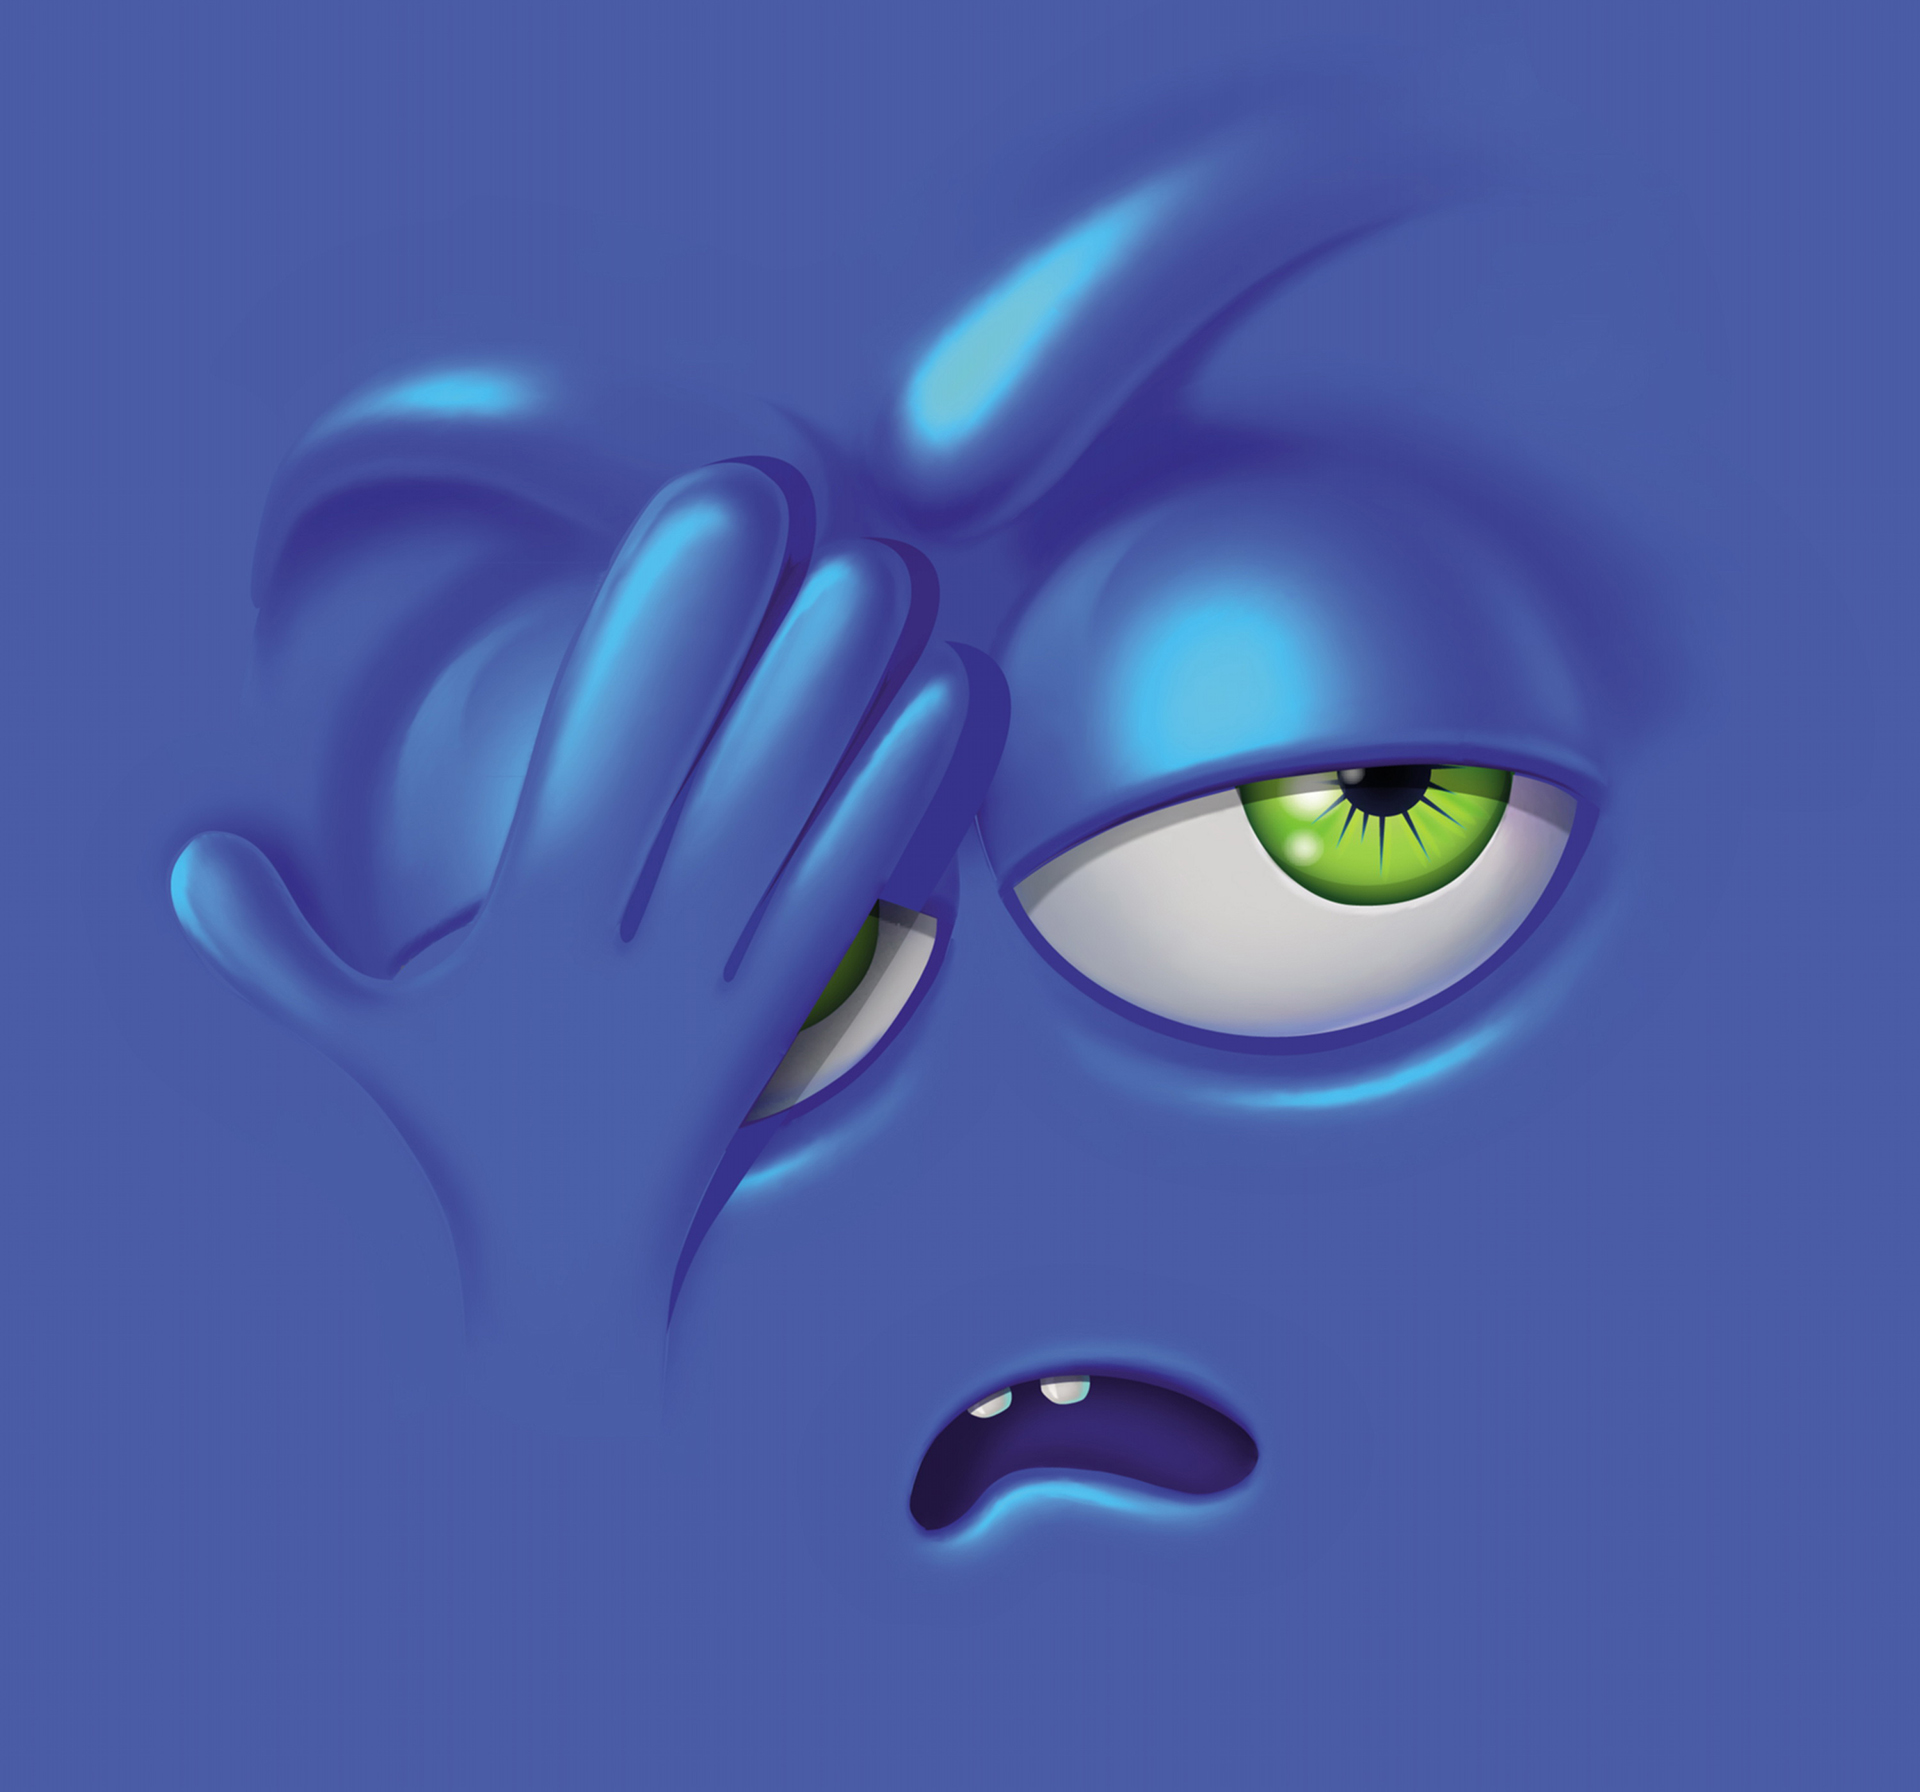 Hd Sad Wallpapers: Download Sad Faces Wallpapers Gallery